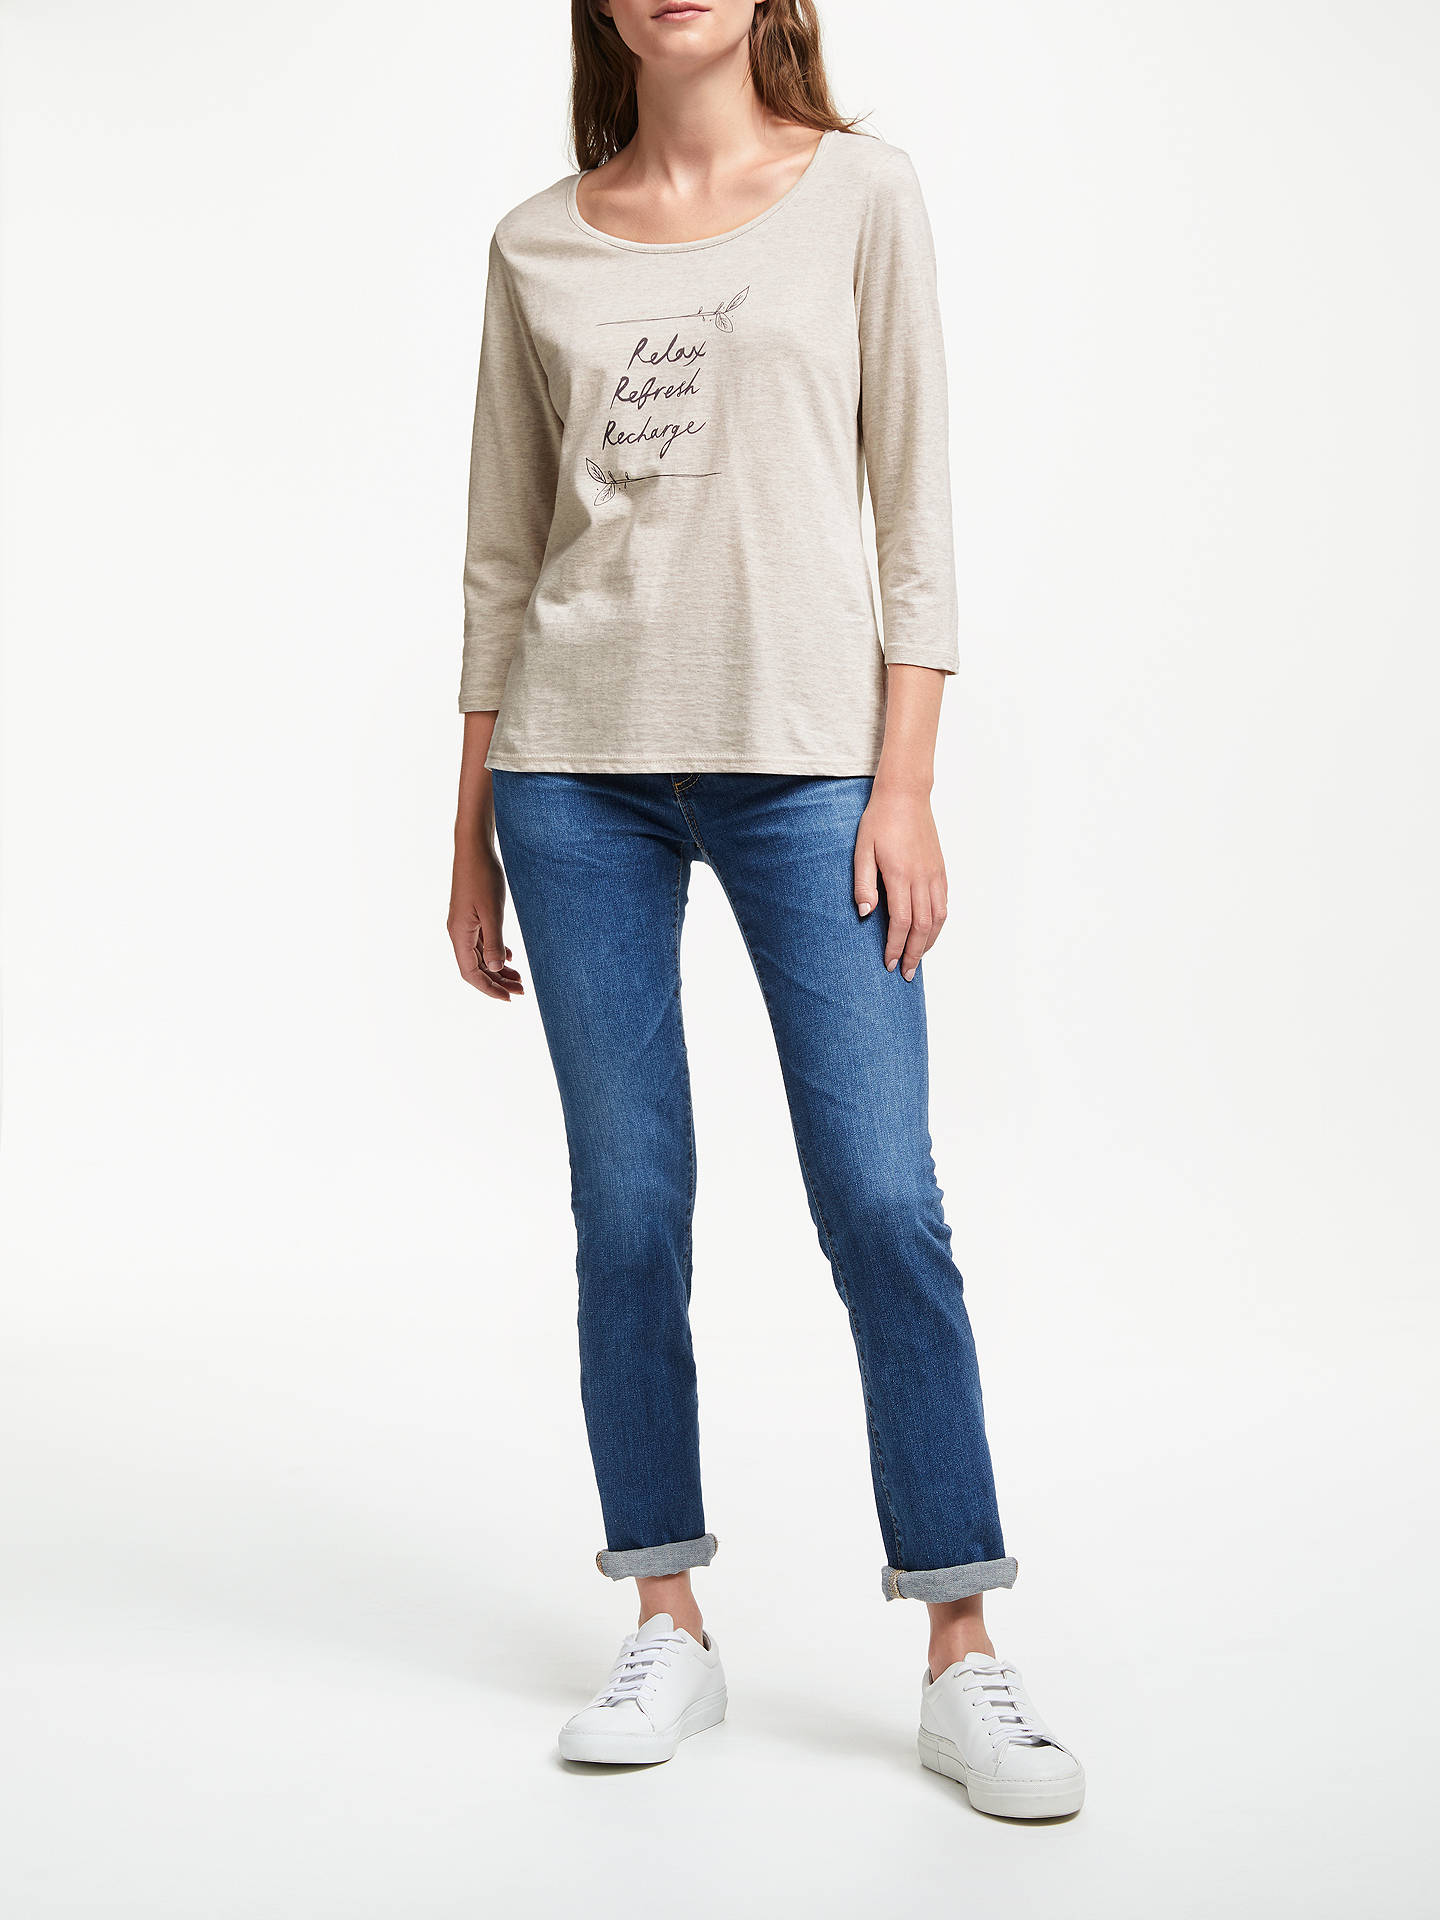 BuyThought Relaxed Motif T-Shirt, Oatmeal, 14 Online at johnlewis.com